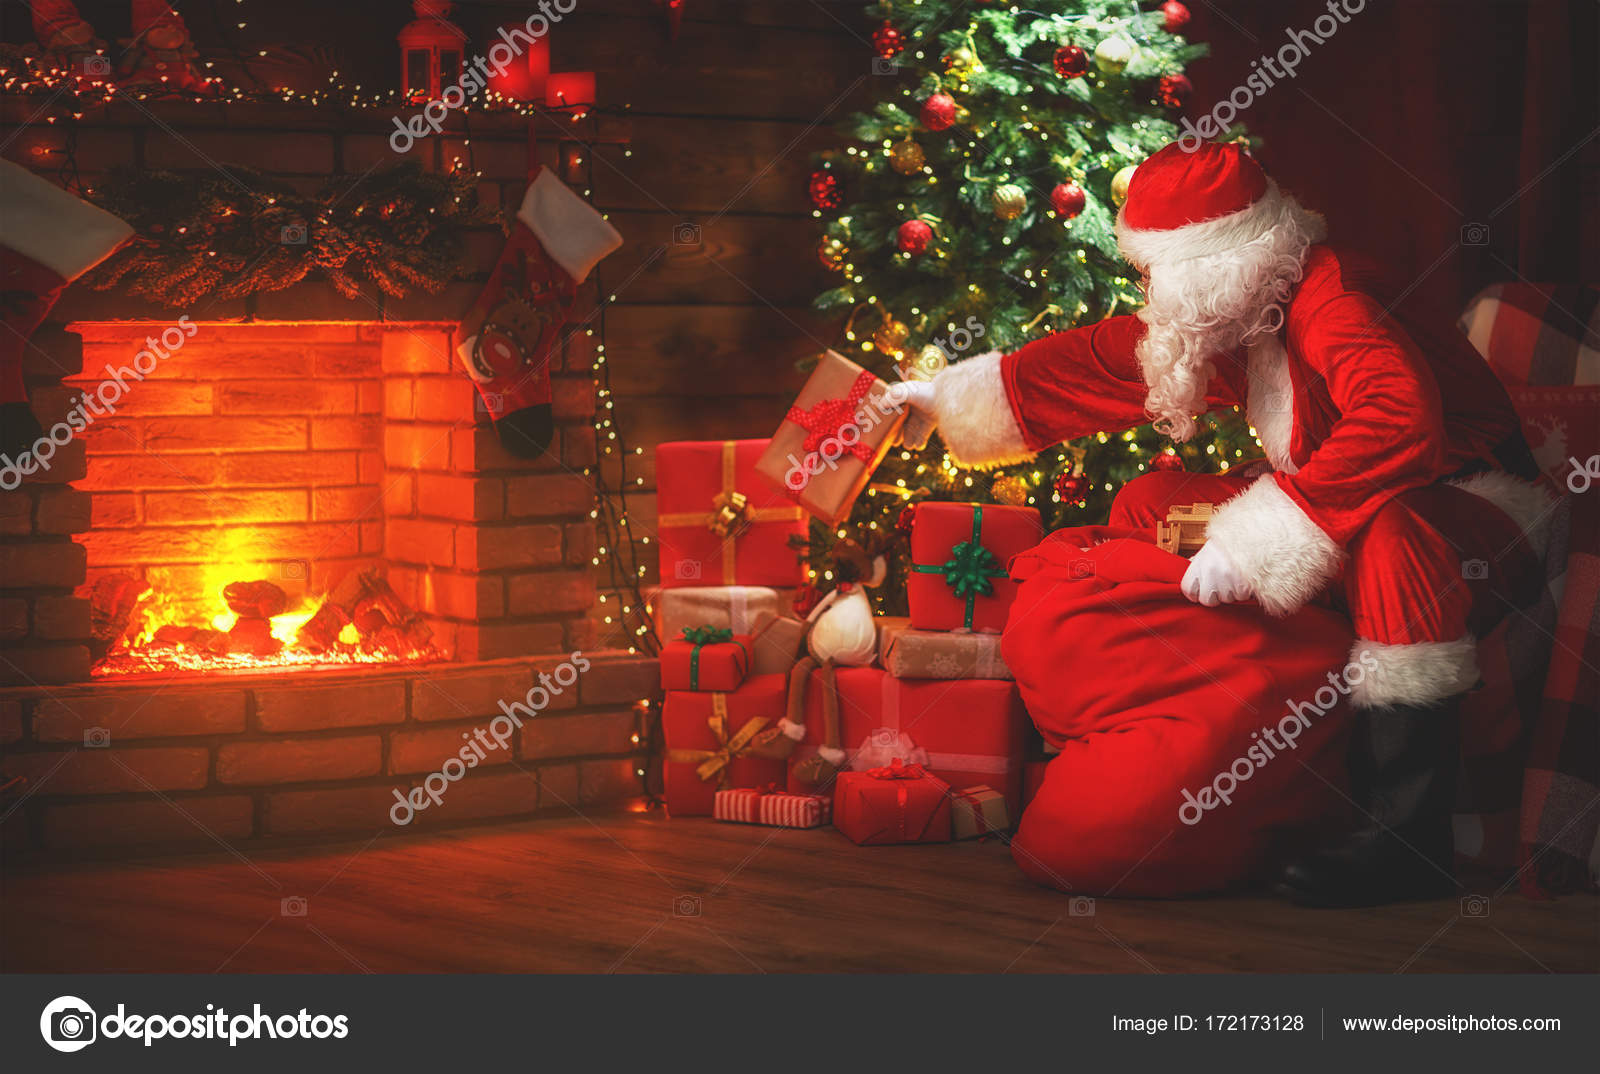 merry christmas santa claus near the fireplace and tree with gi stock photo c evgenyataman 172173128 merry christmas santa claus near the fireplace and tree with gi stock photo c evgenyataman 172173128